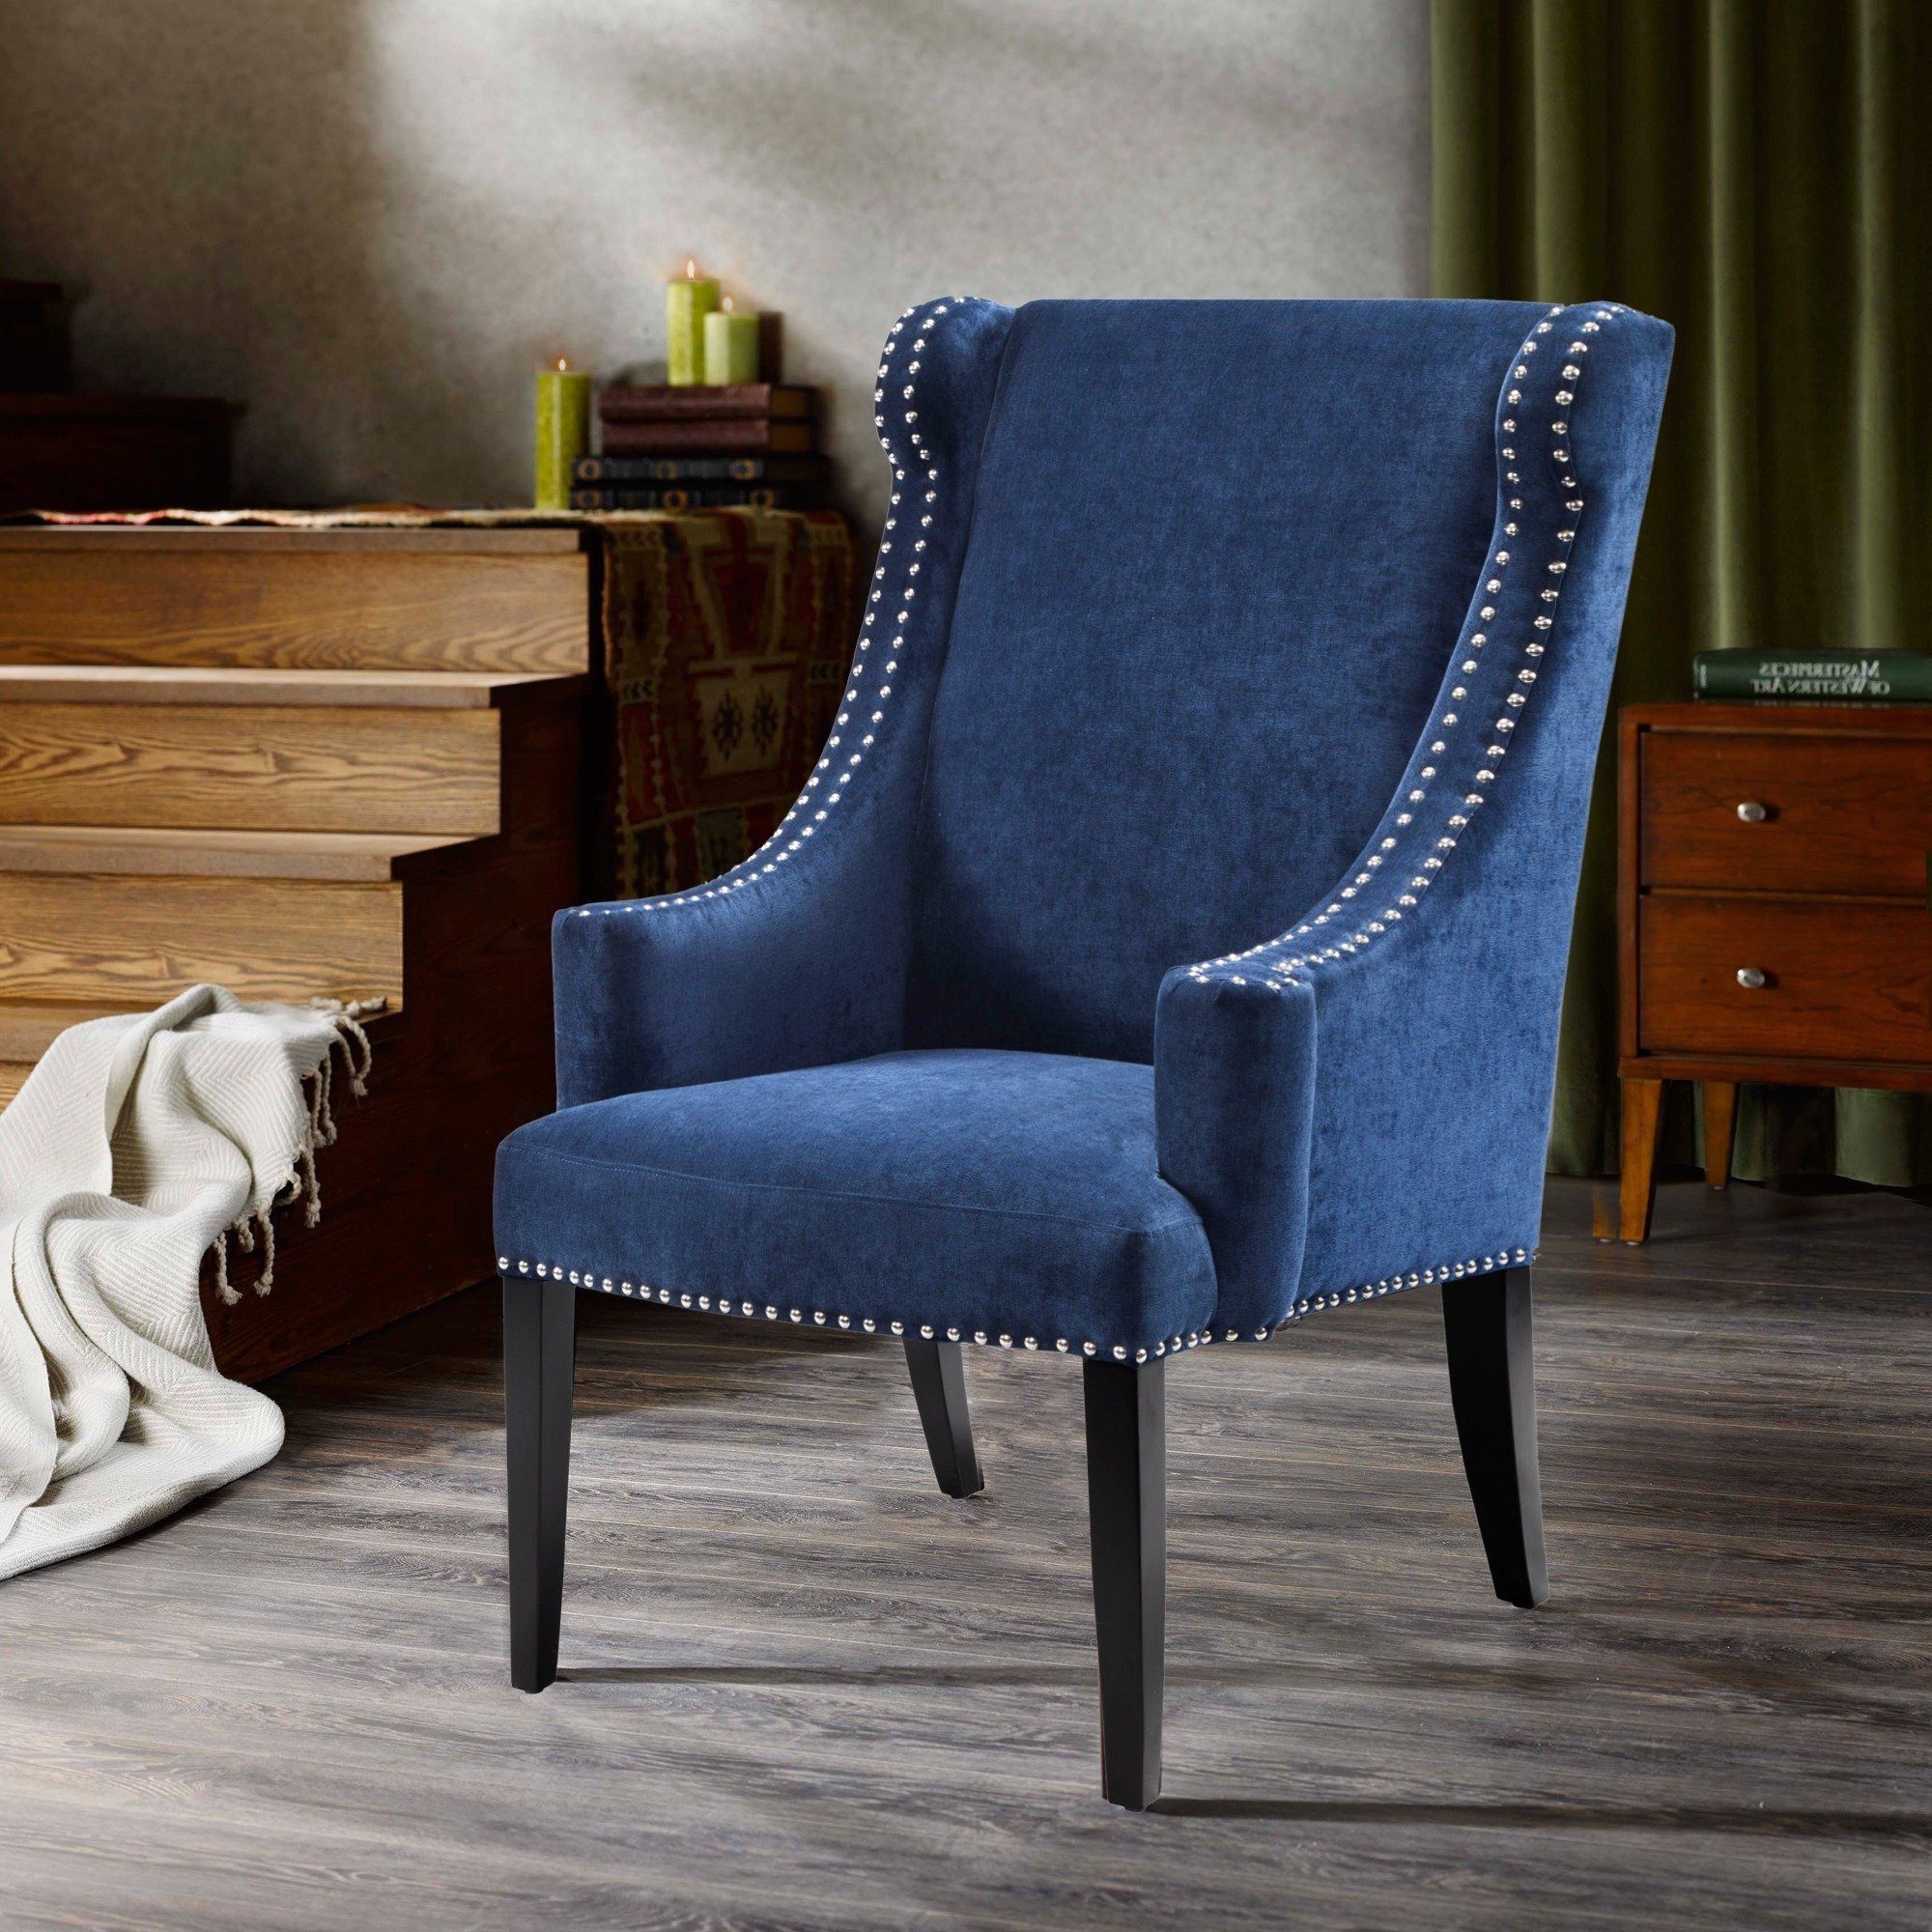 Lucy Grey Sofa Chairs Intended For Most Popular Shop Madison Park Lucy Blue High Back Wing Chair – Free Shipping (Gallery 11 of 20)